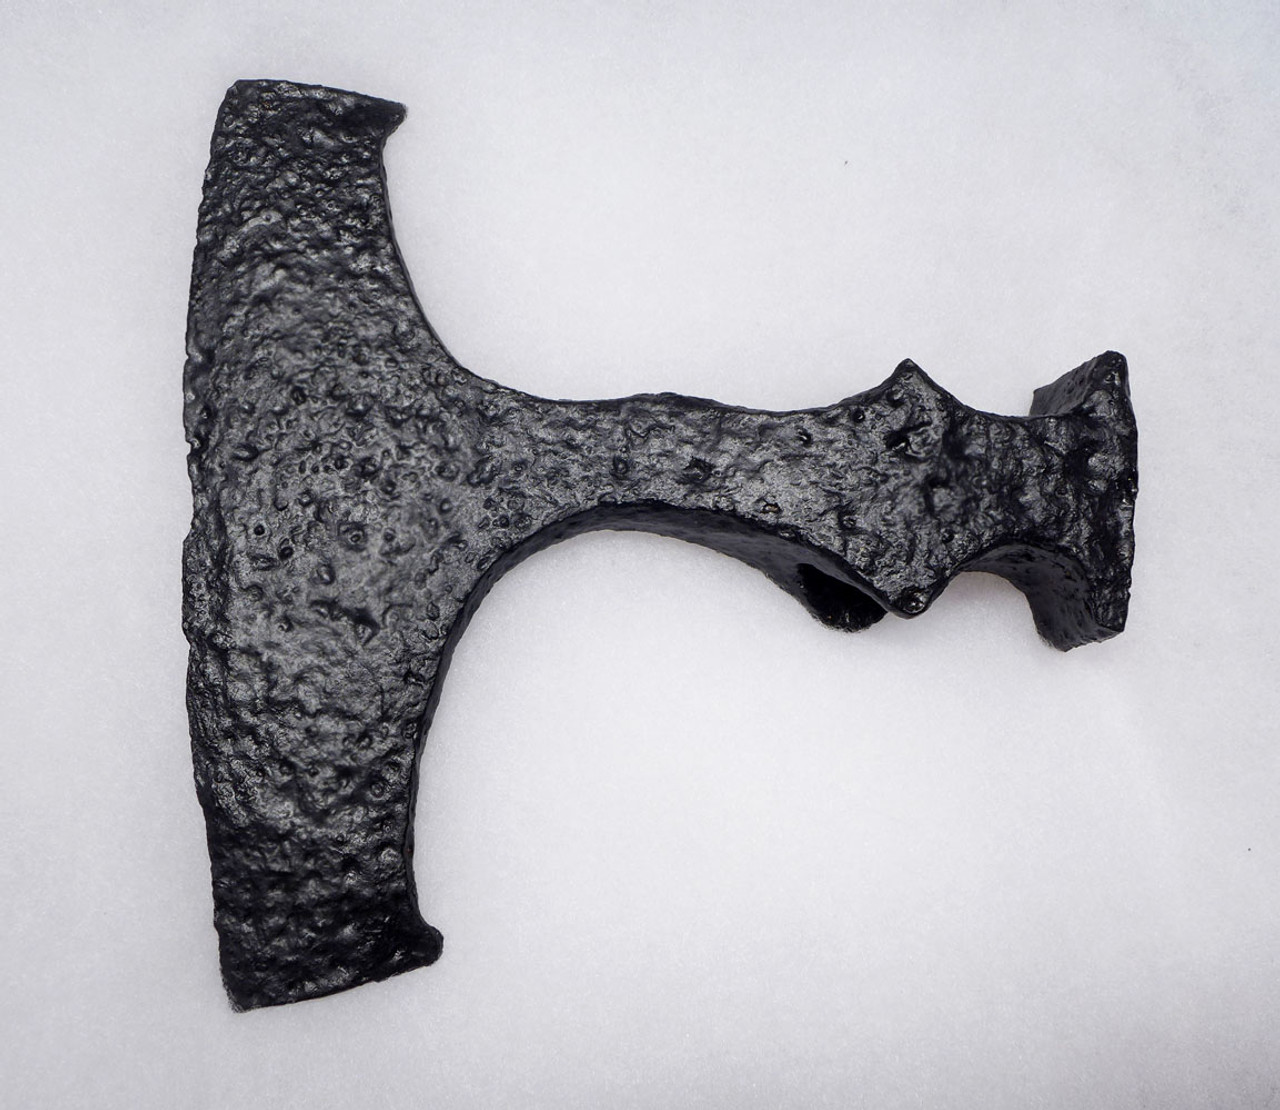 MASSIVE TWO-HANDED BERSERKER VIKING BEARDED AXE OF THE ROMAN BYZANTINE VARANGIAN GUARD  *R282